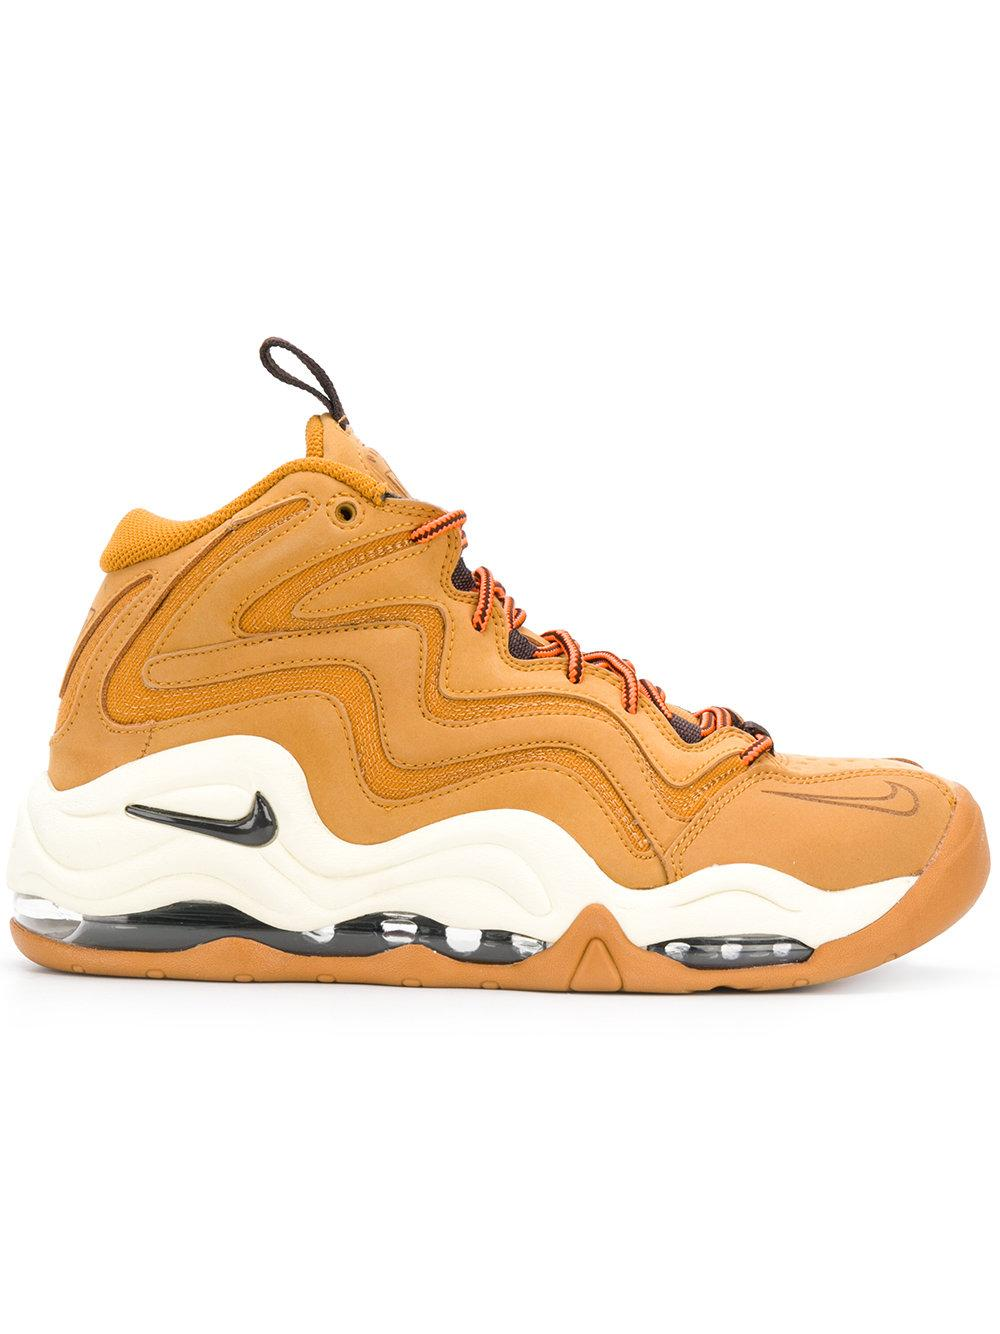 6b3774fe6736 Nike Air Pippen 1 Sneakers - Brown